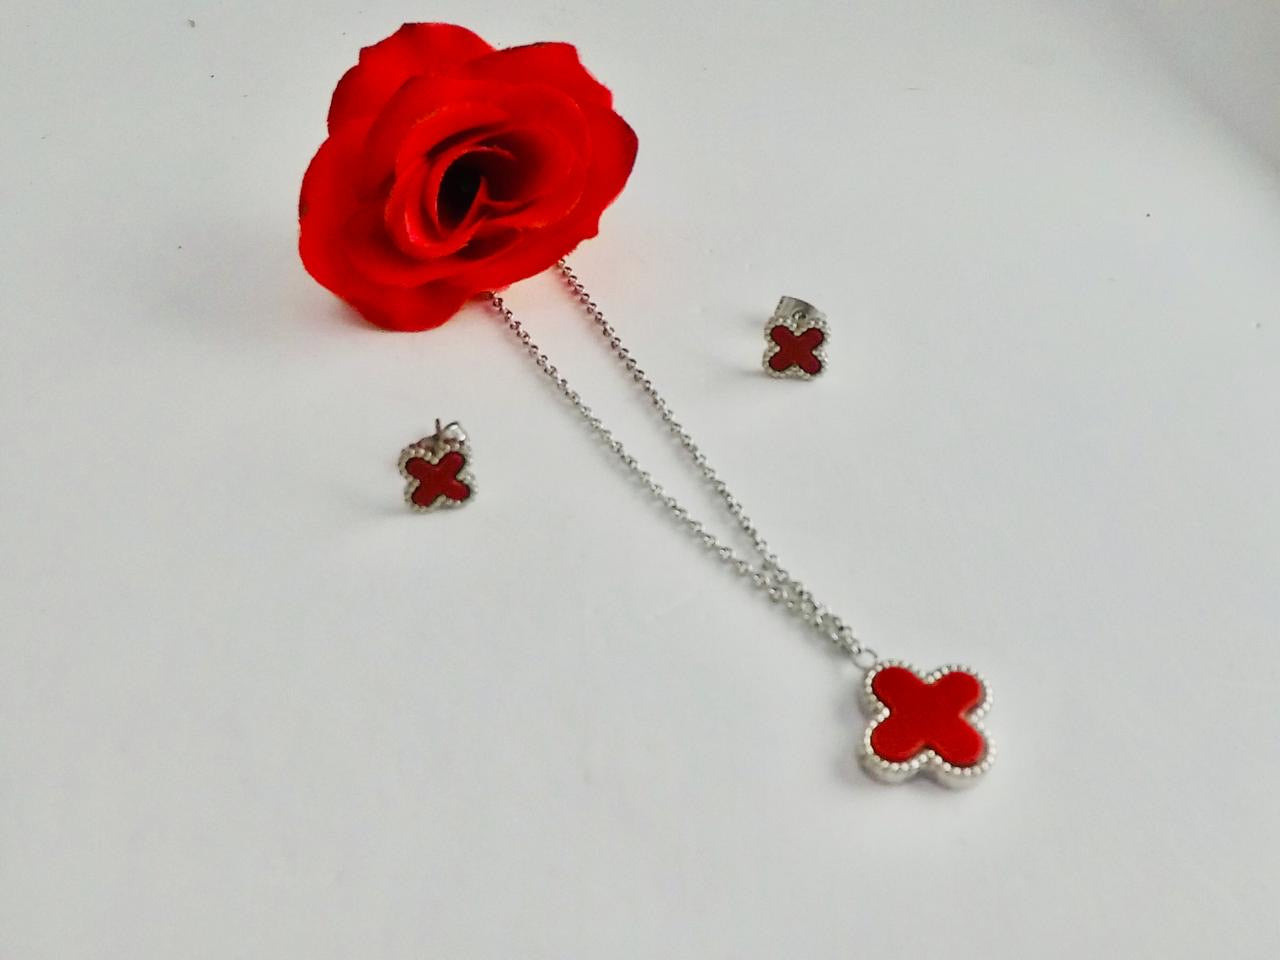 LV Red Plus Shaped Pendant Necklace with Tops/Earrings Silver